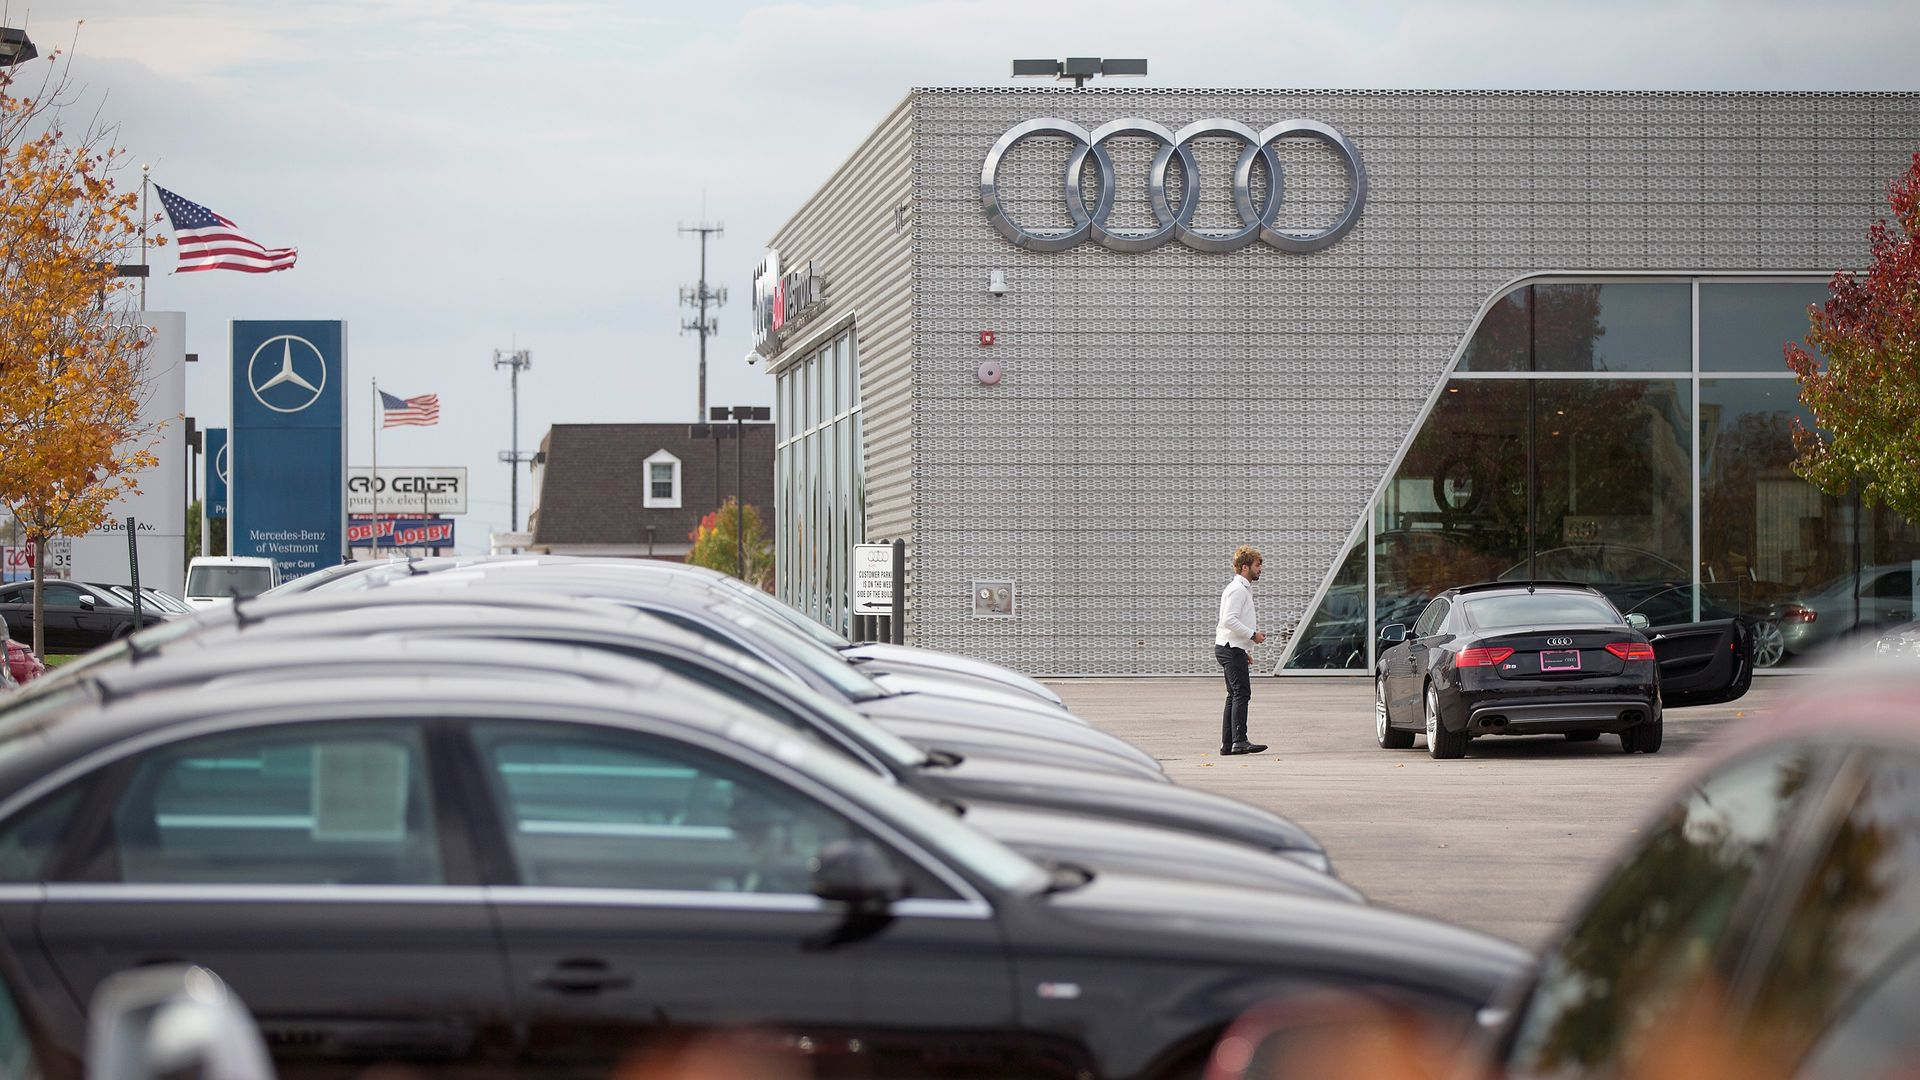 An Audi car dealership.